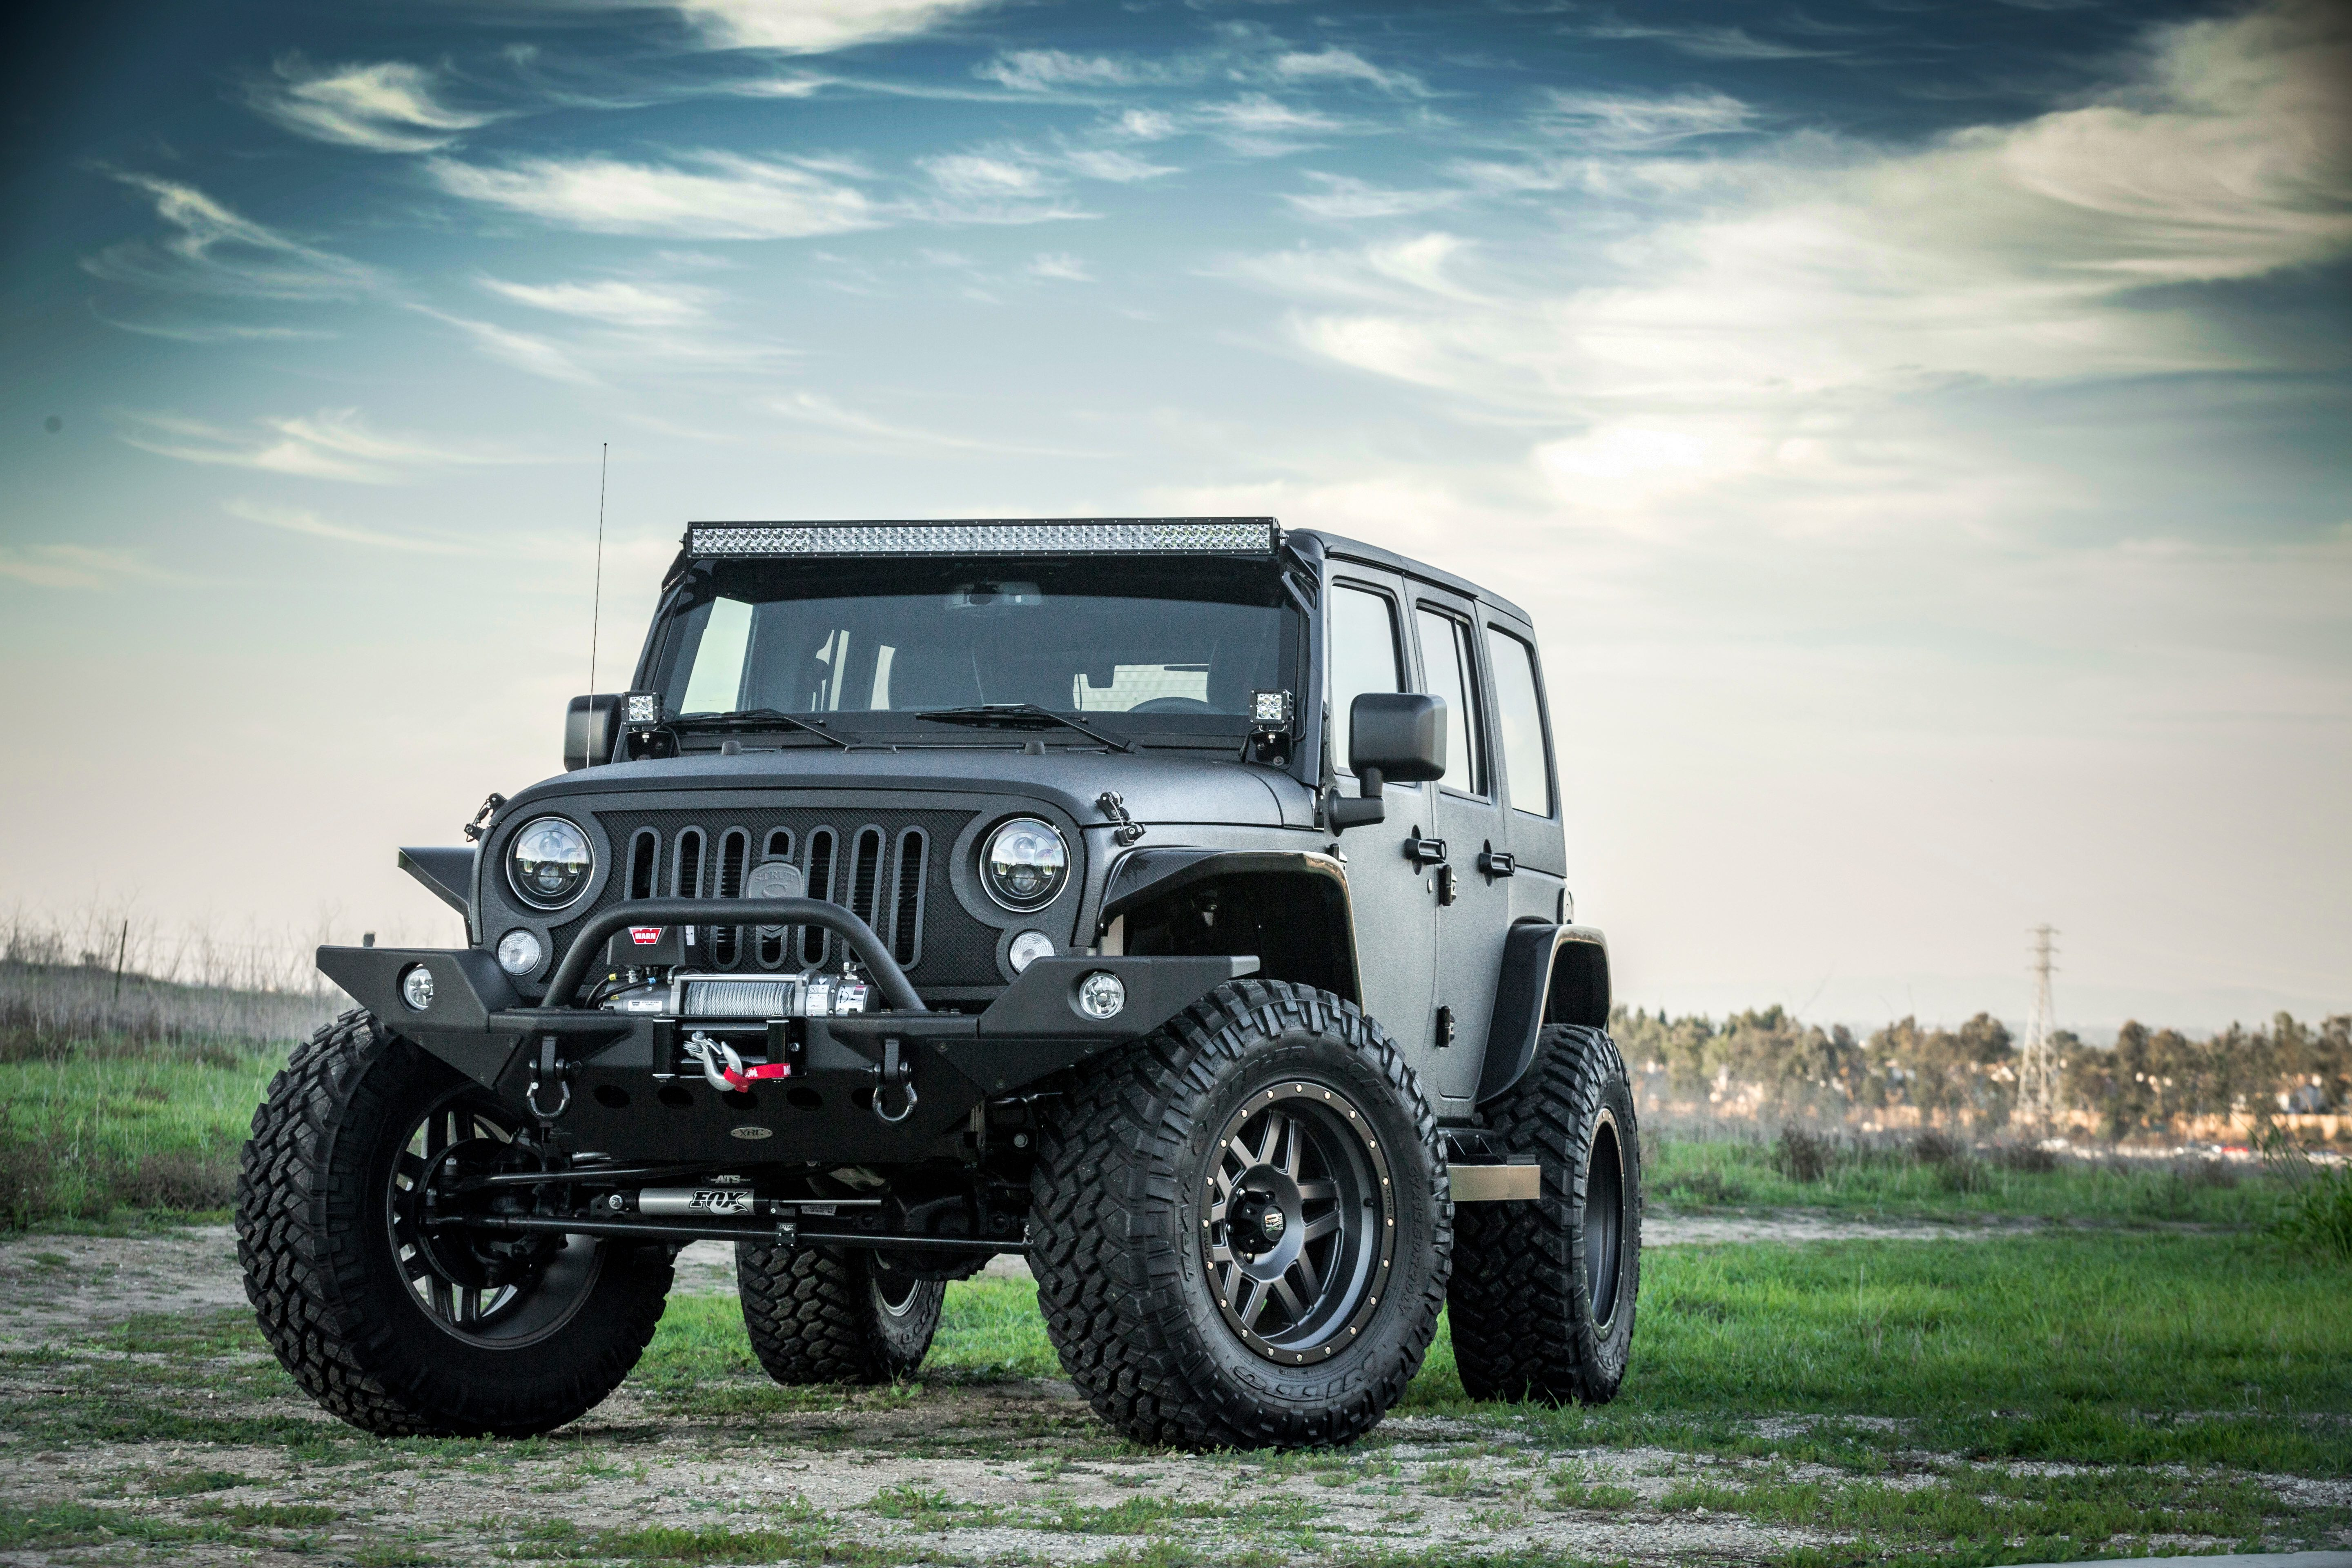 Jeep Wrangler Gets Three Custom New Grilles from STRUT They All